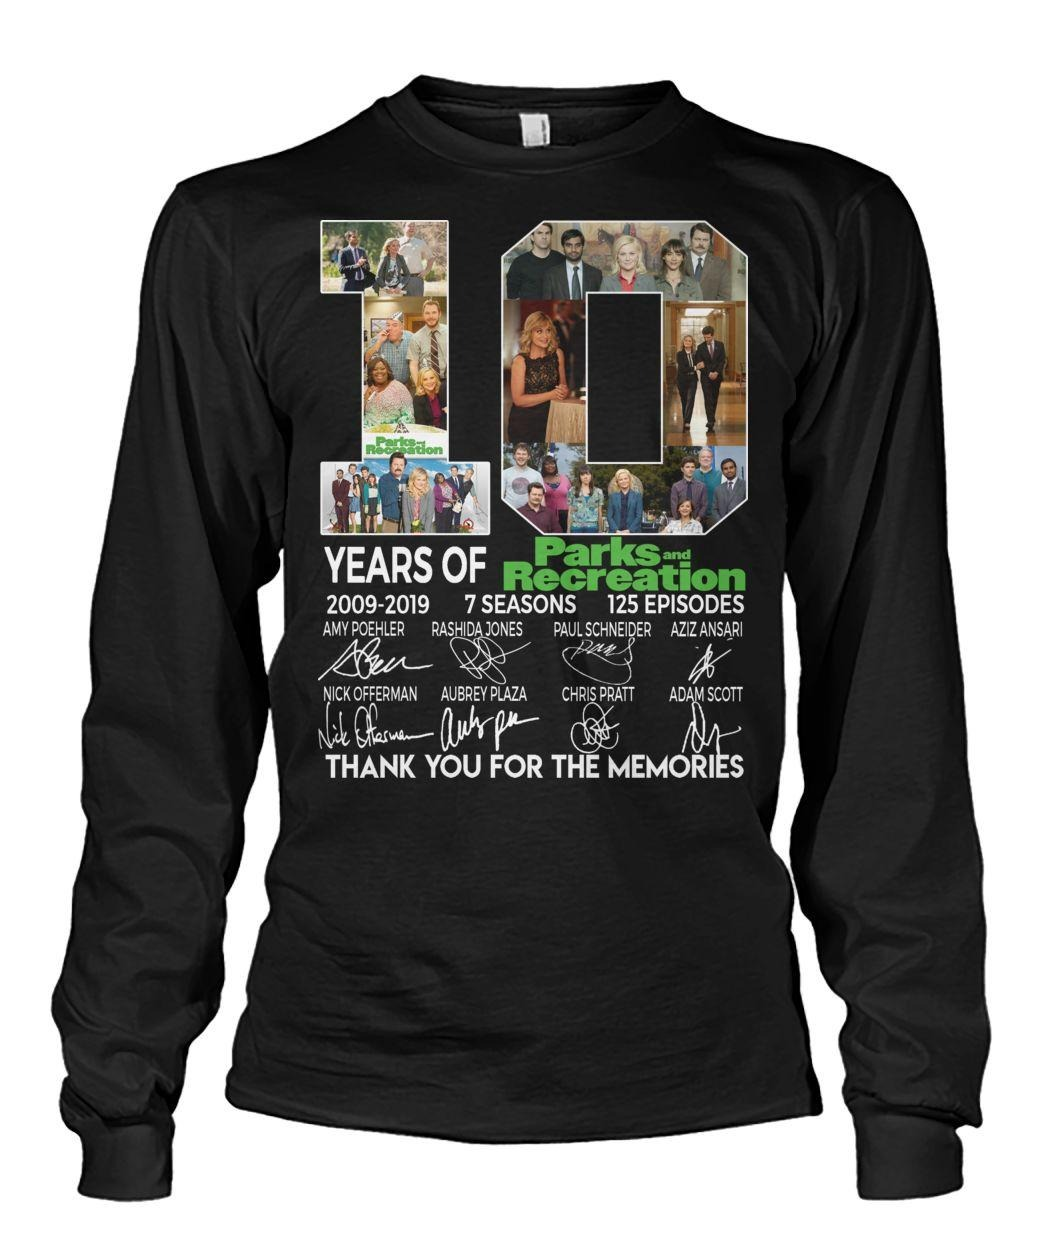 10 Years of Parks and Recreation 2009-2019 7 seasons 125 episodes signatures shirt